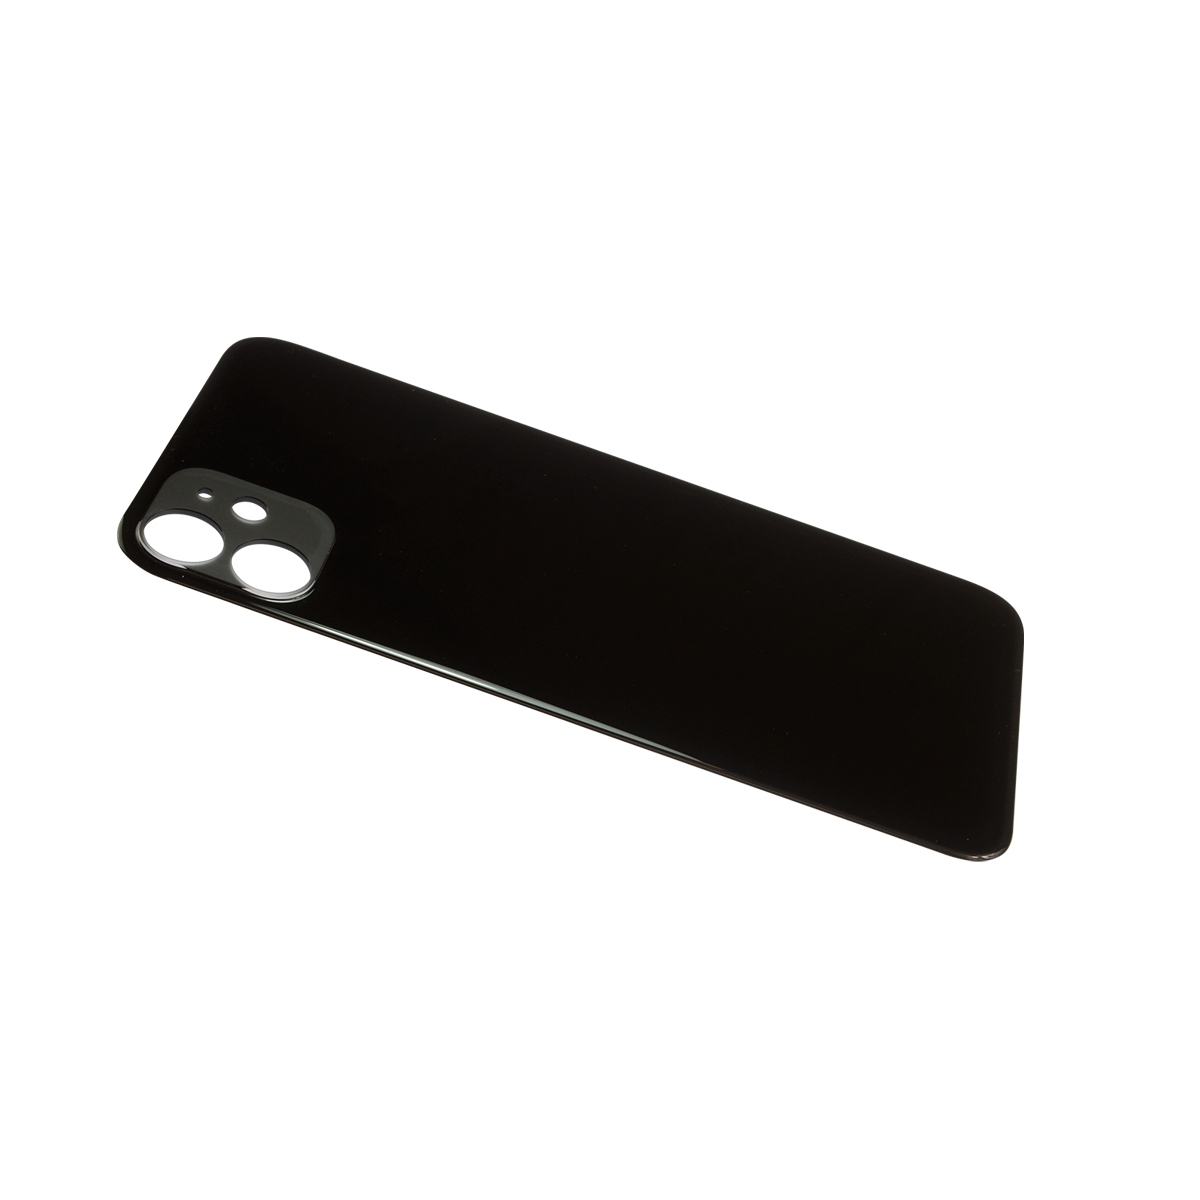 iPhone_11_Back_glass_with_big_hole_side_black_SBAEE45ZQXA1.png